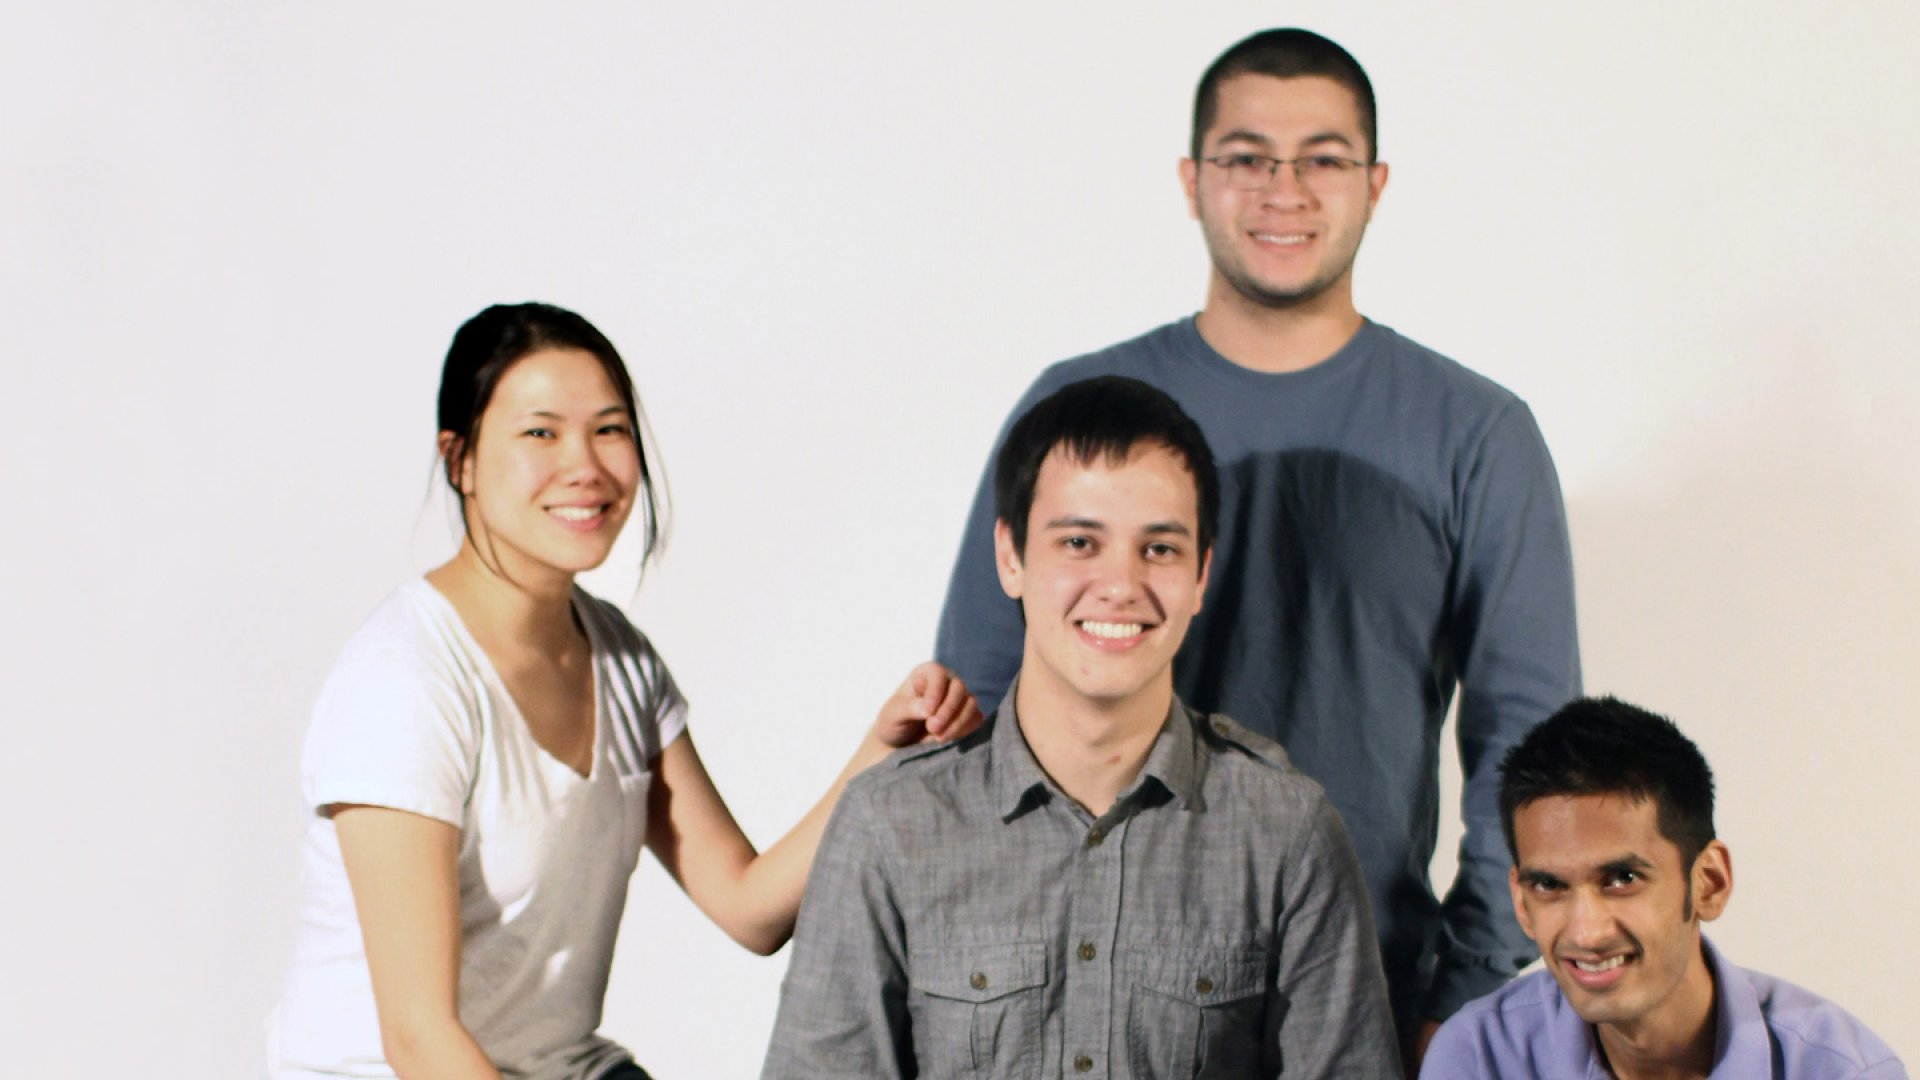 The PayTango team: Kelly Lau-Kee, Brian Groudan, Umang Patel, Christian Reyes.